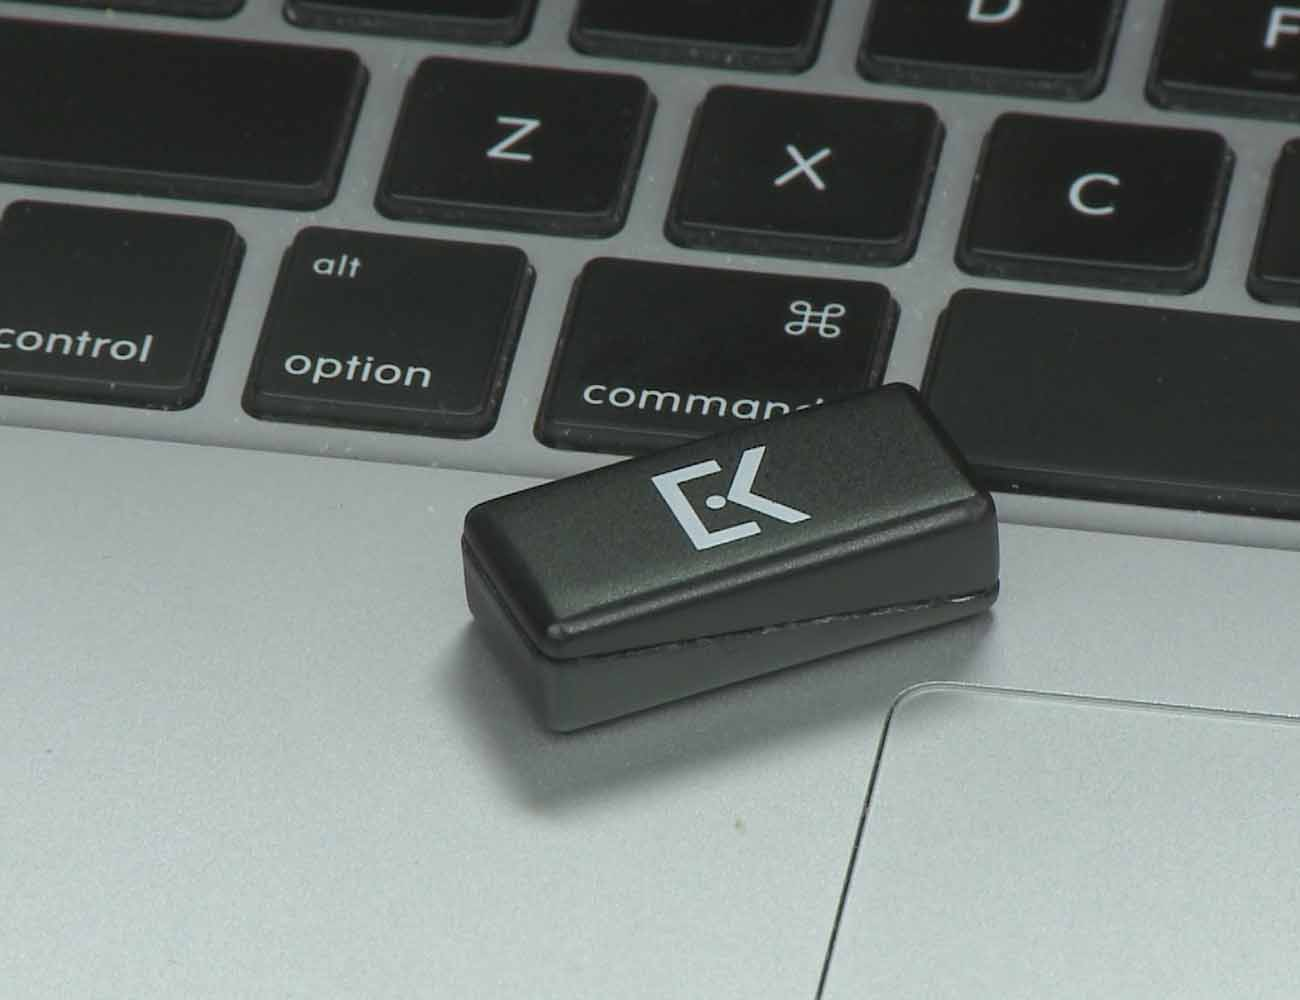 Everykey – Never Forget a Password or Key Again